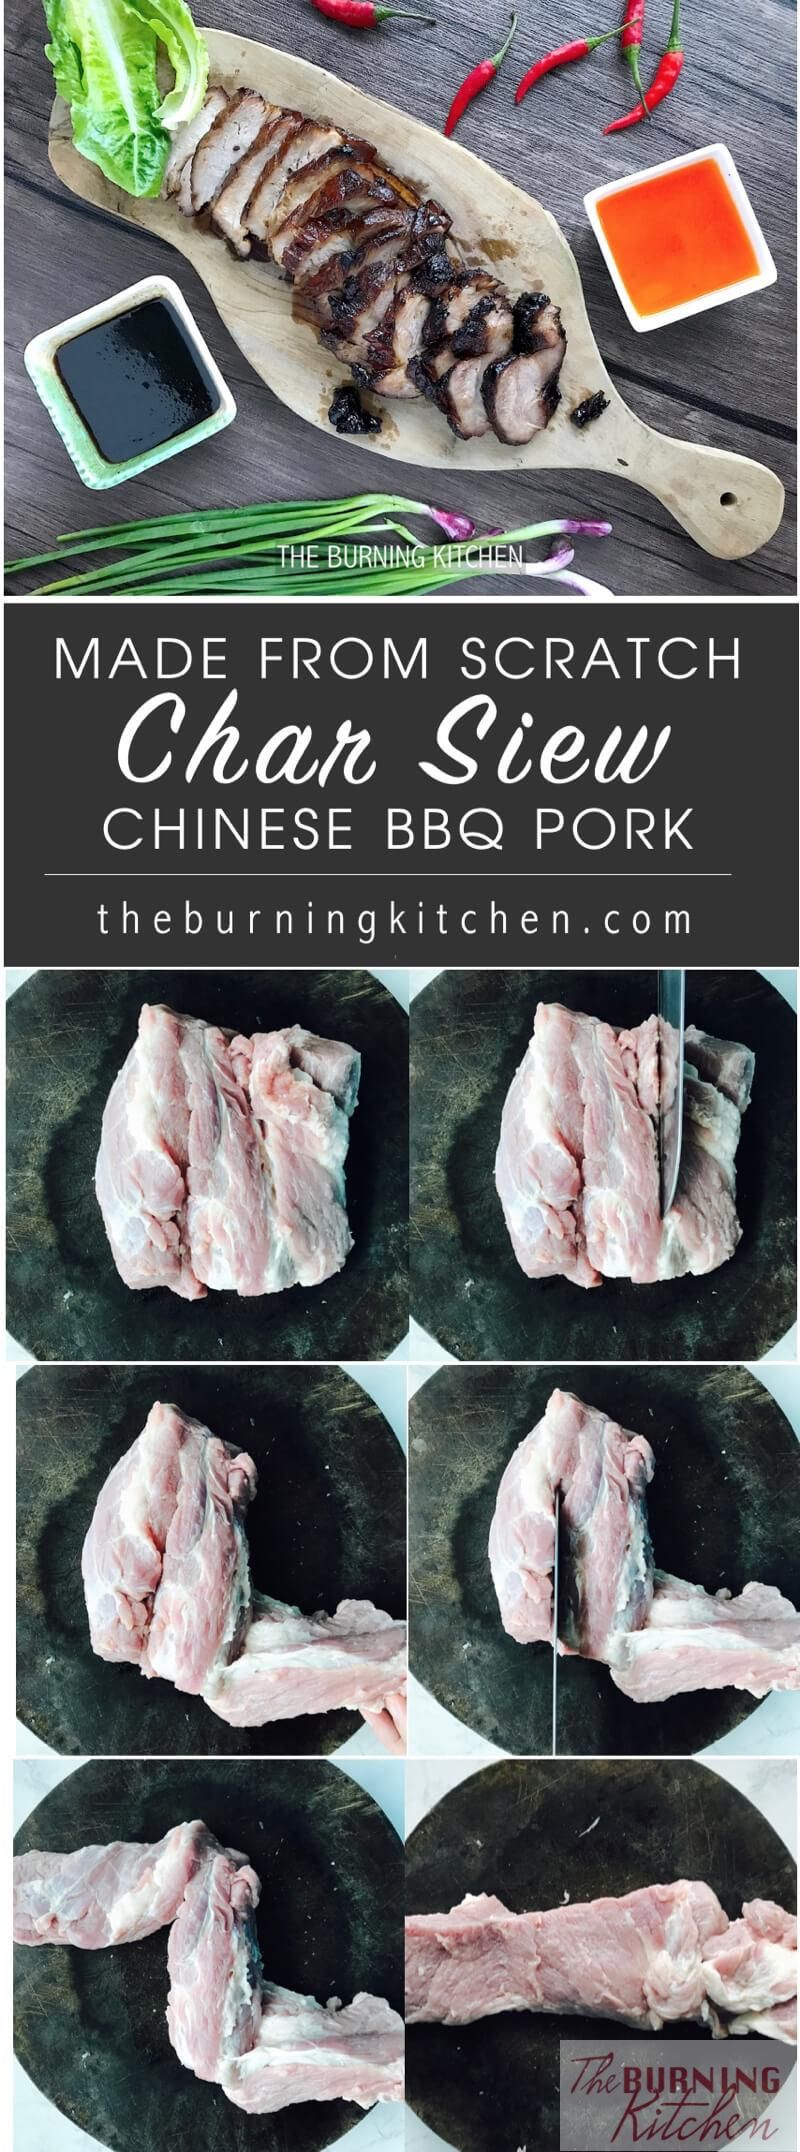 Sticky Chinese BBQ Pork (Char Siew): This is Mum's Char Siew recipe with no MSG and no food colouring. Look how juicy and succulent the Char Siew is! My absolute favourite are the little sticky glazed bits with a slightly charred, smoky flavour. Simply heavenly...